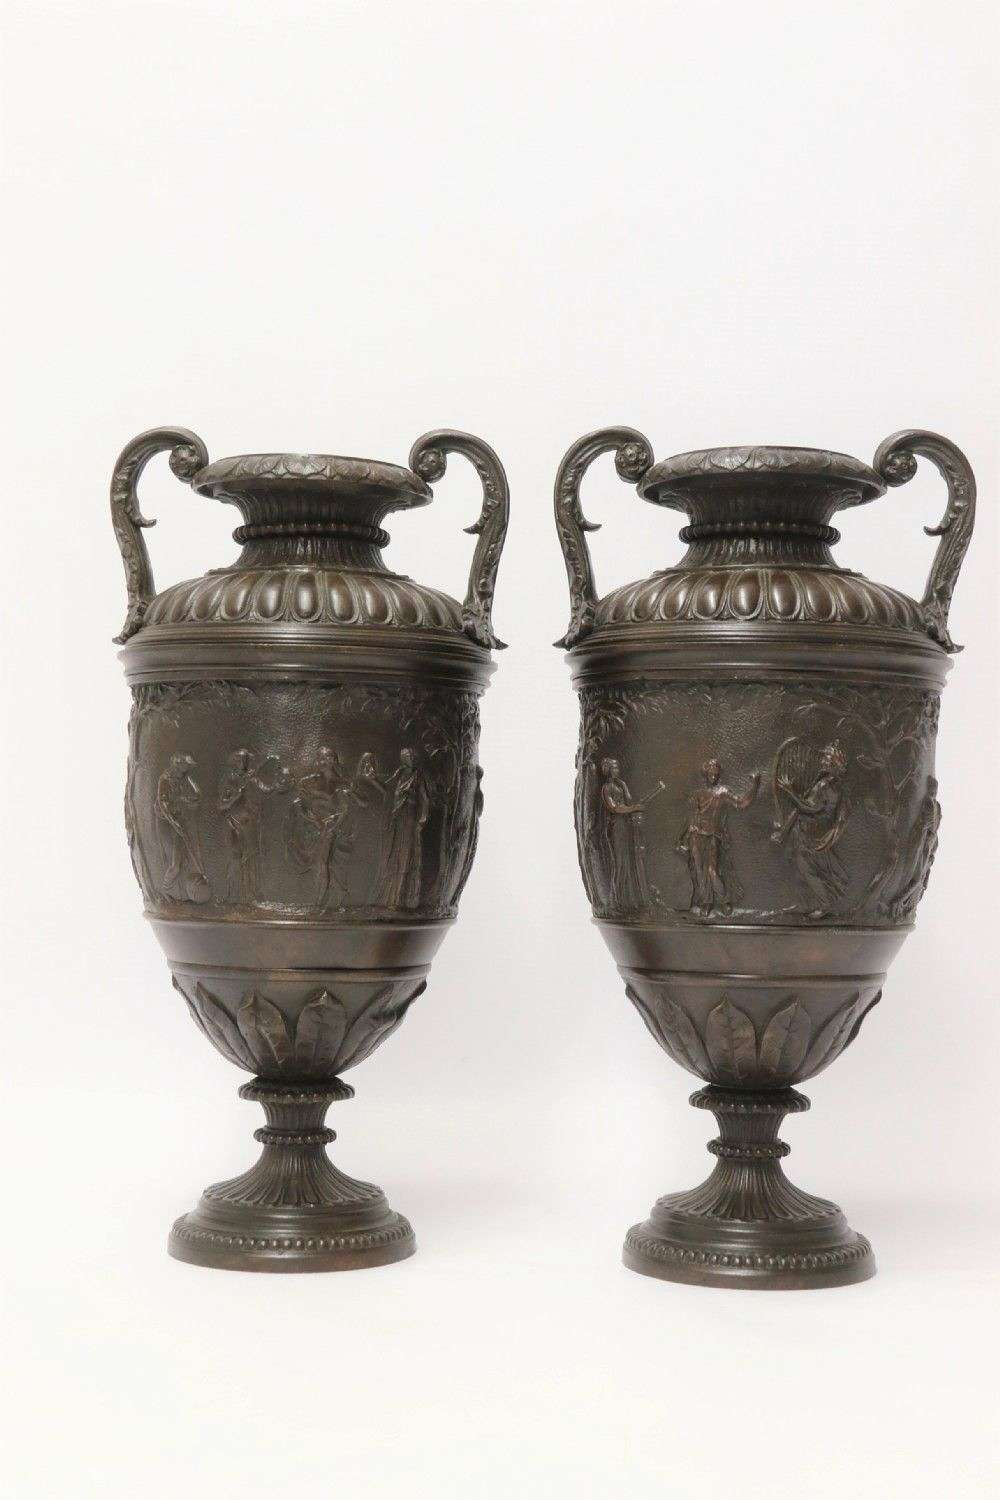 A Fine Pair Of Grand Tour French 19th C Neoclassical Bronze Urns